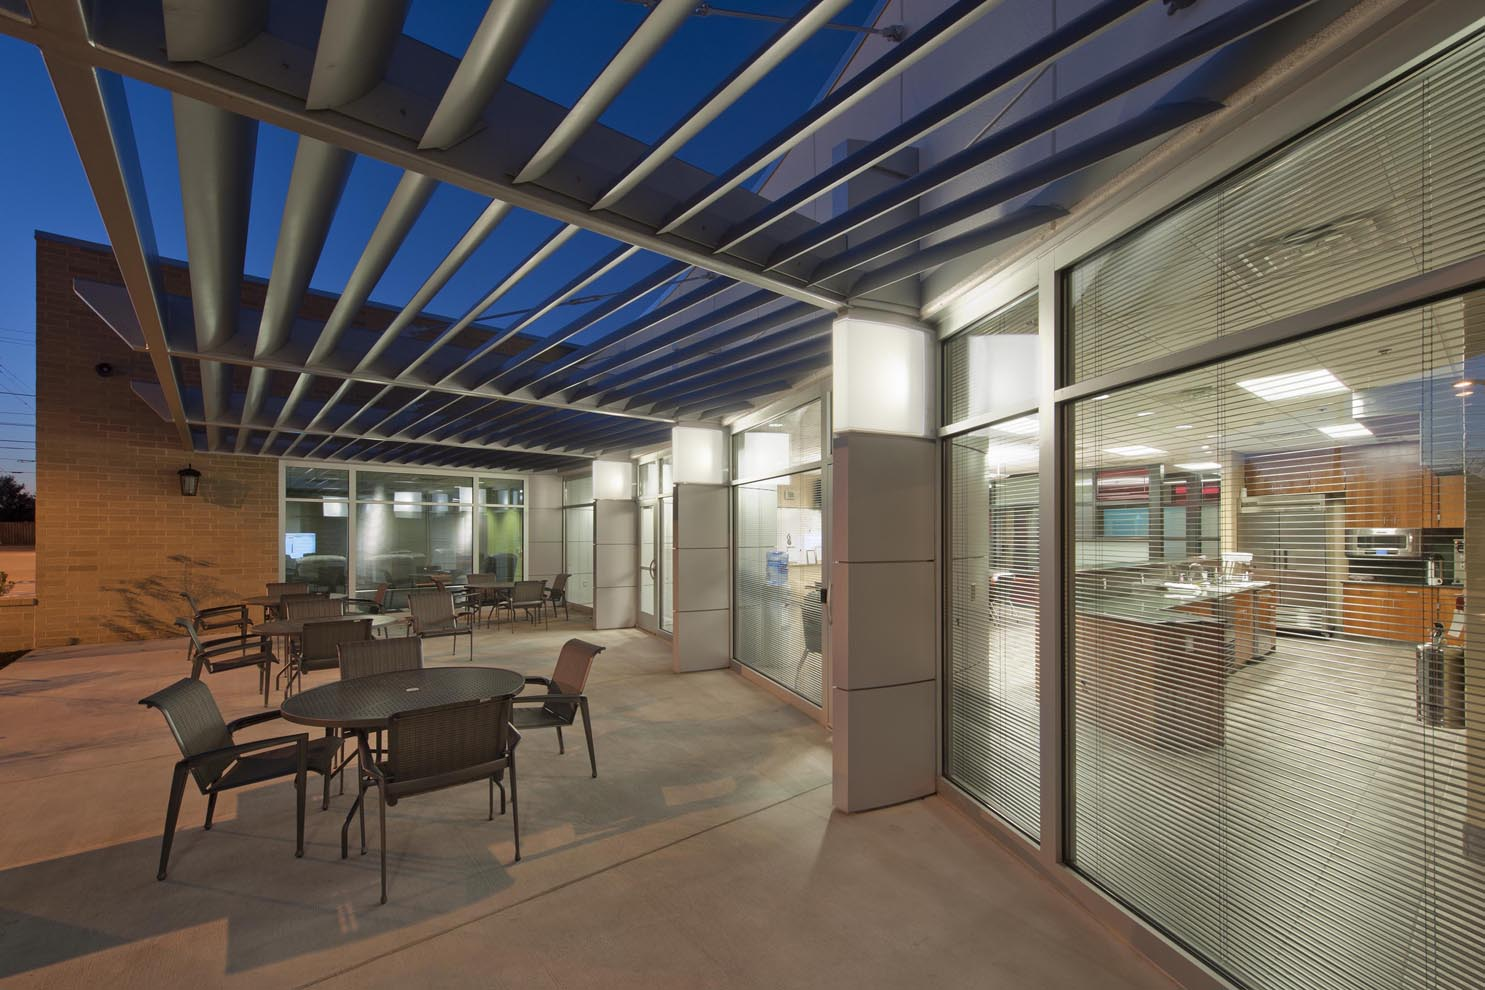 patio with metal trellis overhead